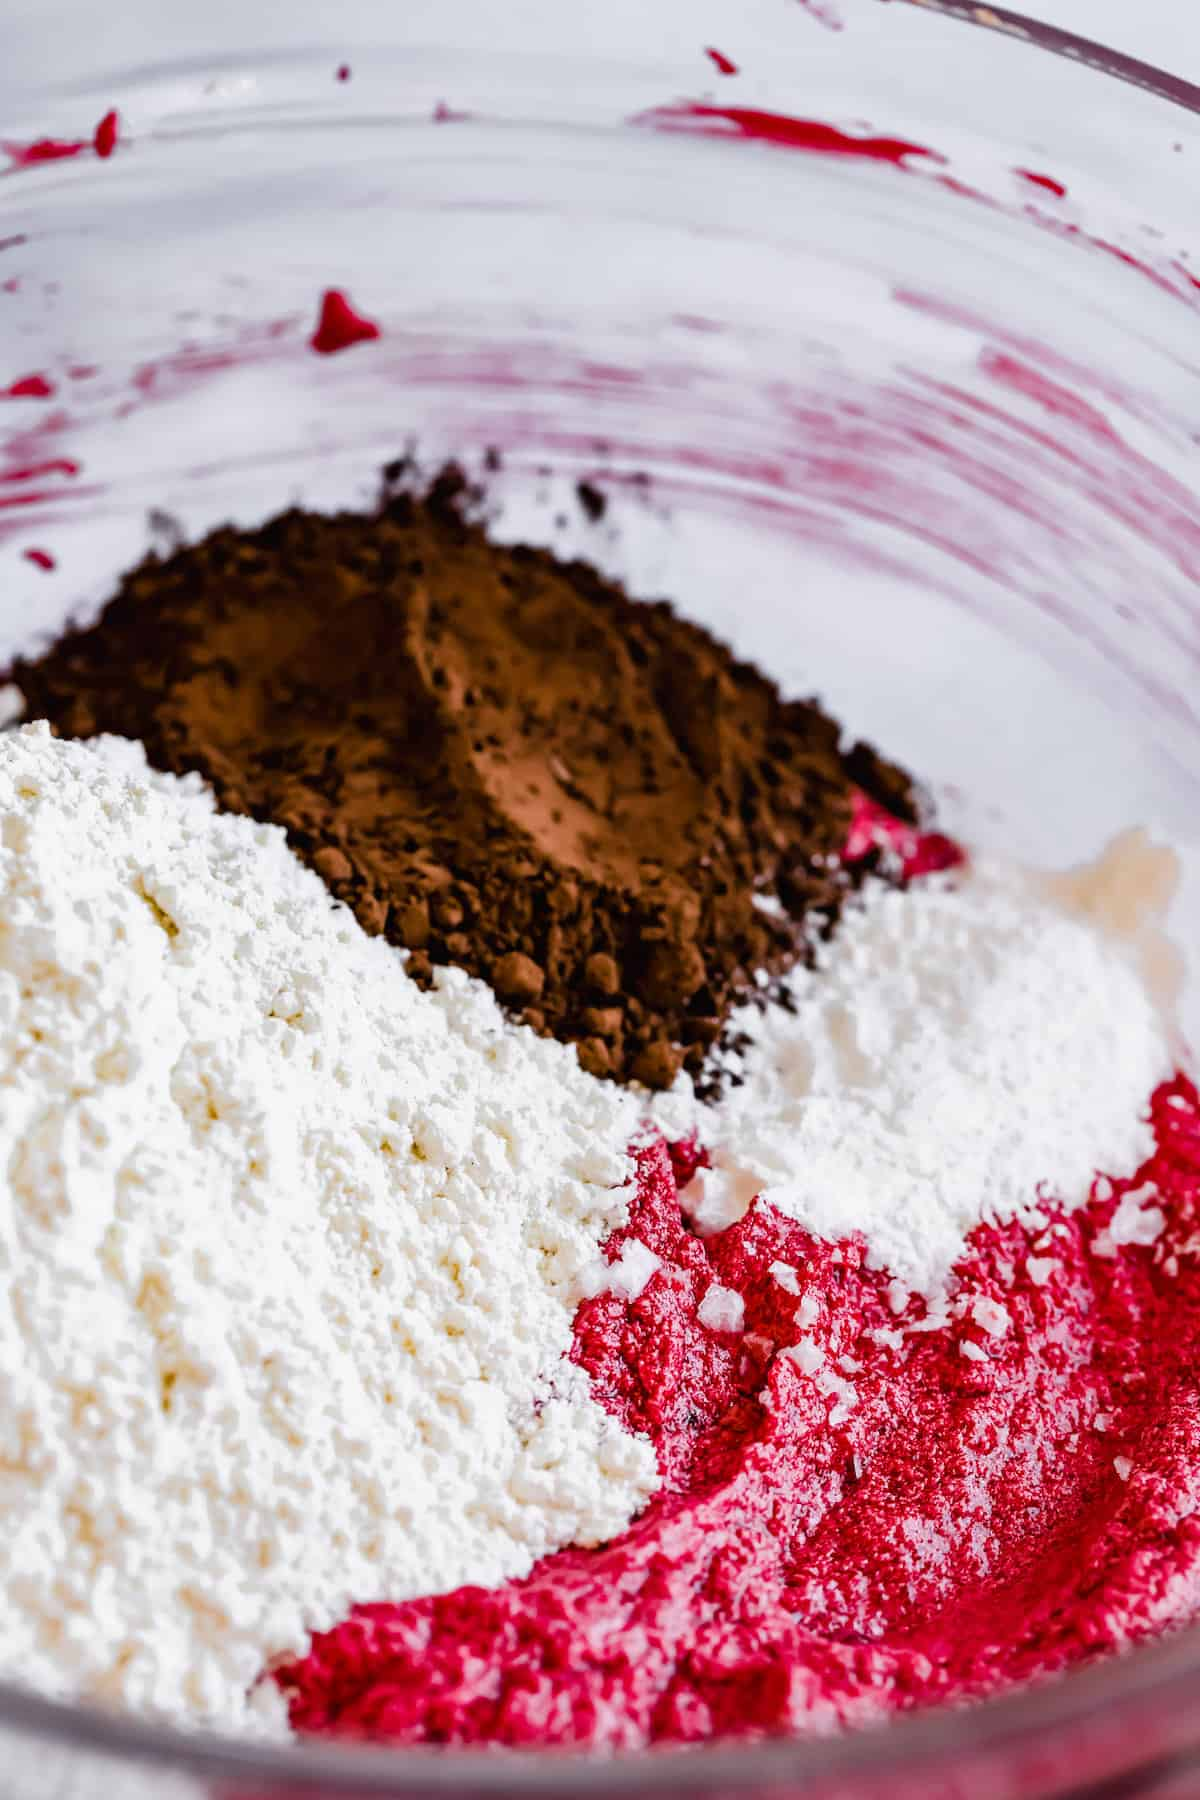 The Dry Ingredients in a Bowl with the Combined Wet Ingredients for Red Velvet Crinkle Cookies